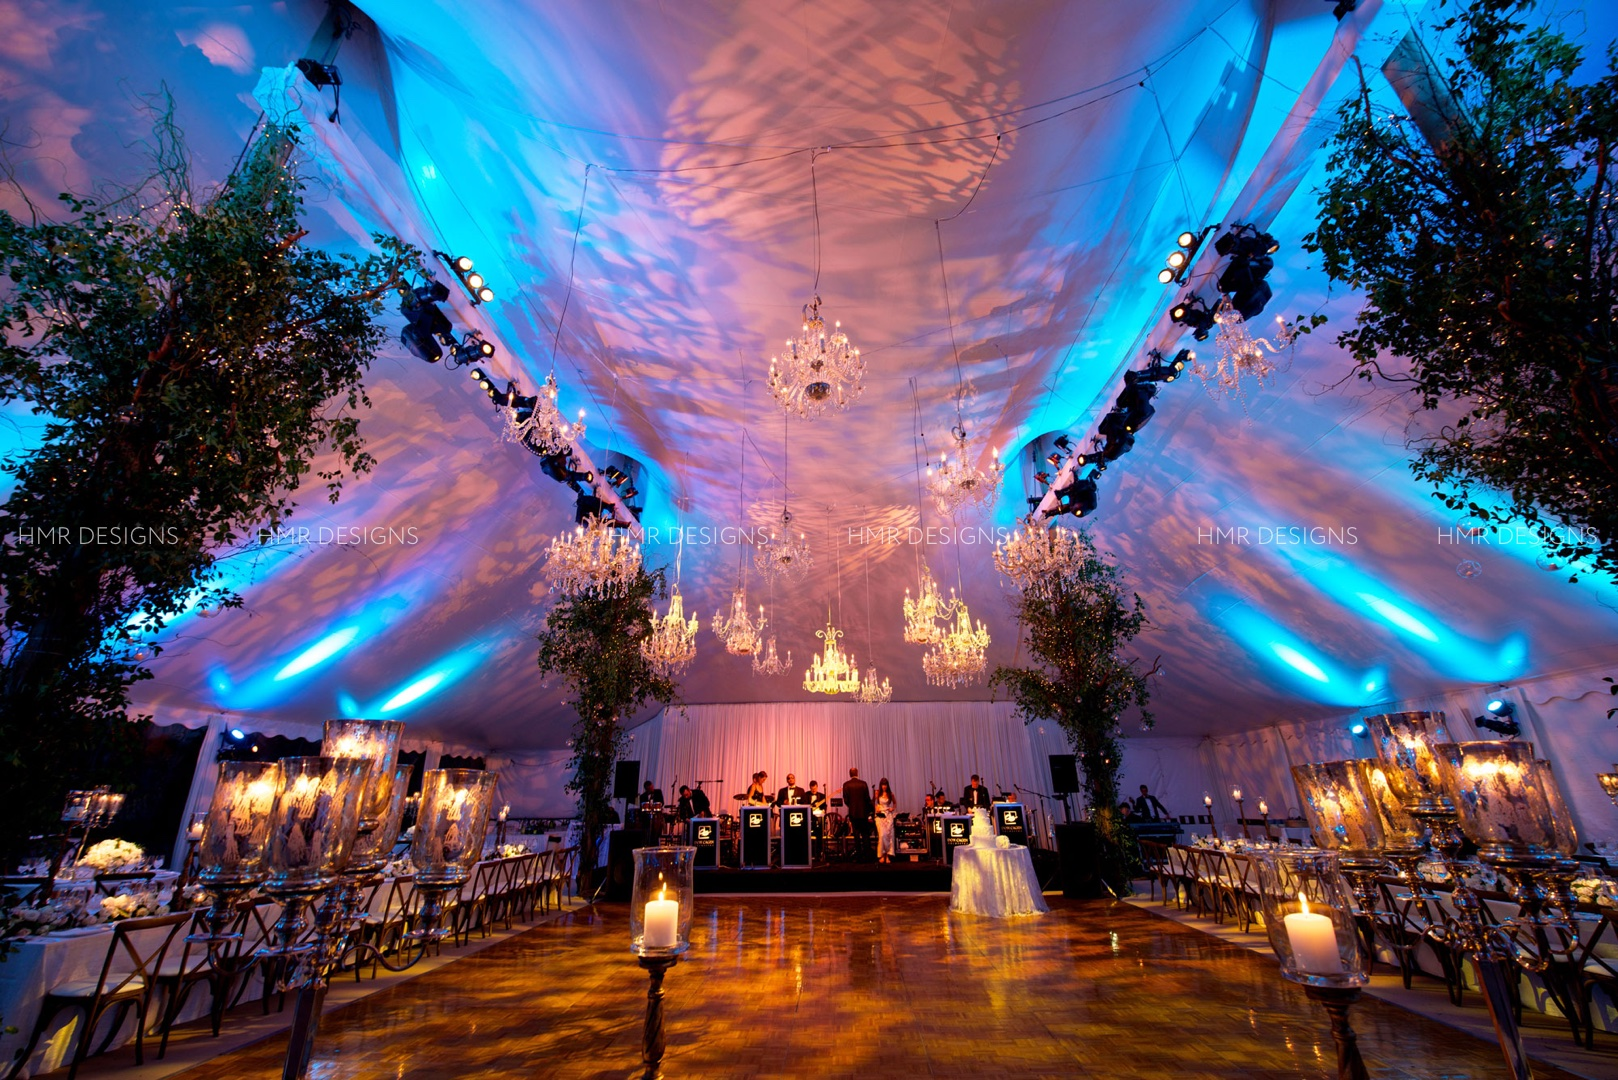 Greenery in the shape of trees covers tent poles for a wedding lit by chandeliers and projections by HMR Designs